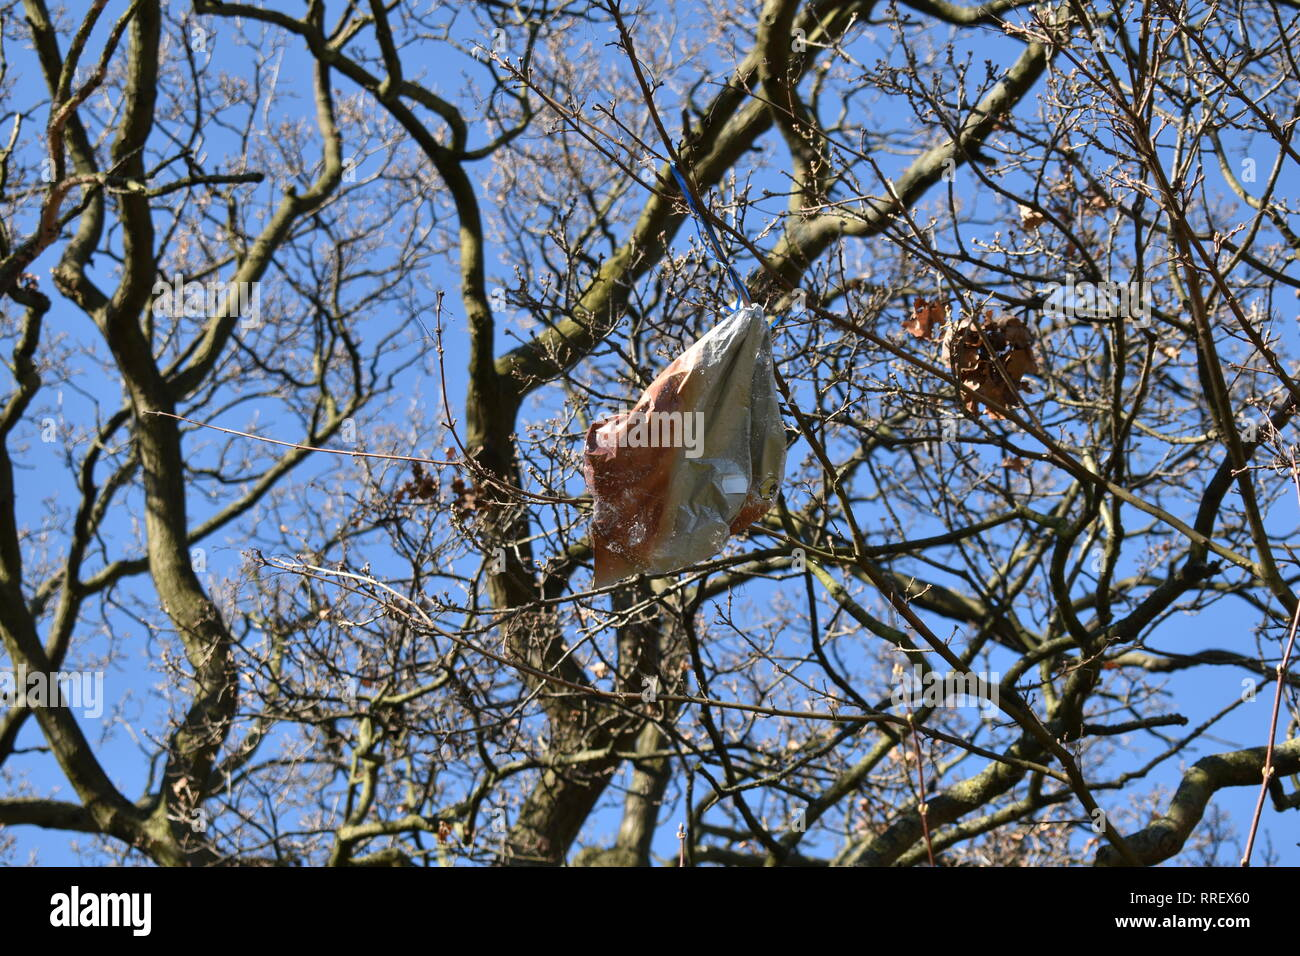 Large crisp packet in the branches of a tree. Spring growth on budding tree, Essex, UK. - Stock Image